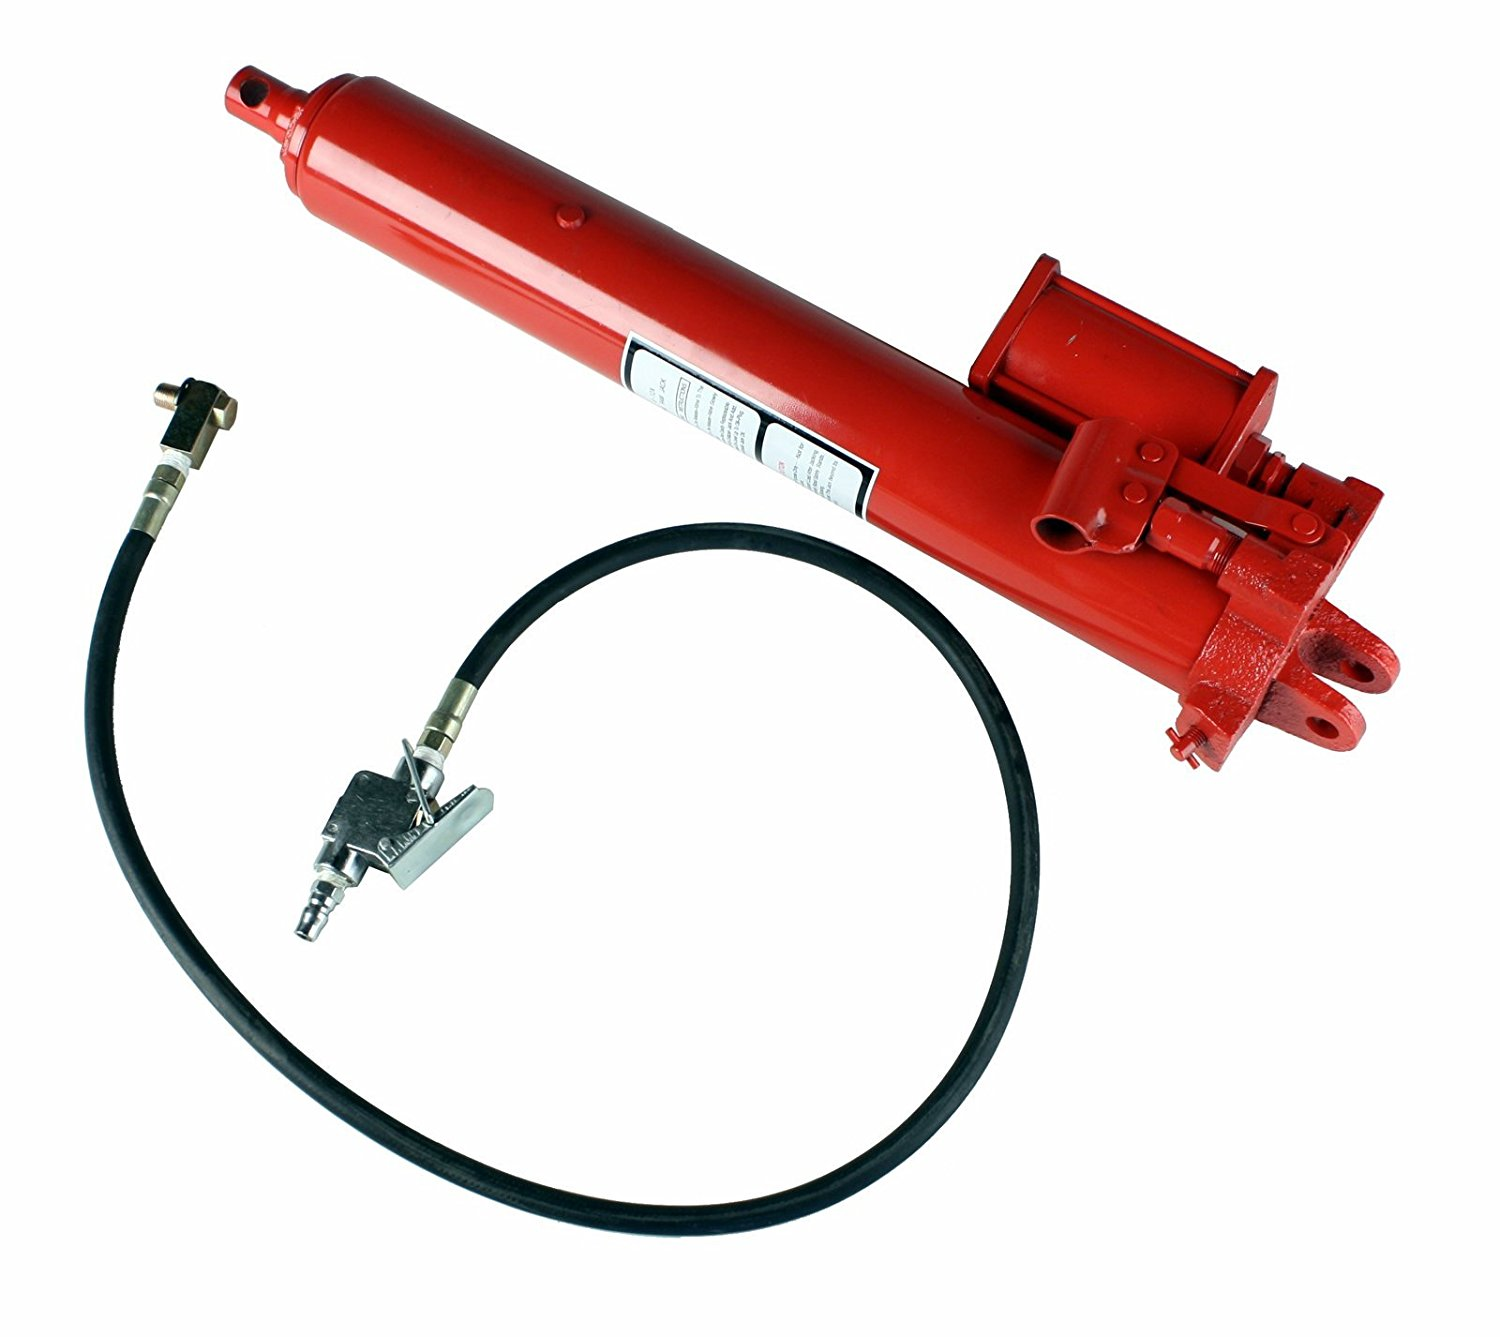 Dragway Tools 8 Ton Hydraulic and Air Long Ram for Engine Hoist Cherry Picker Shop Crane Jack